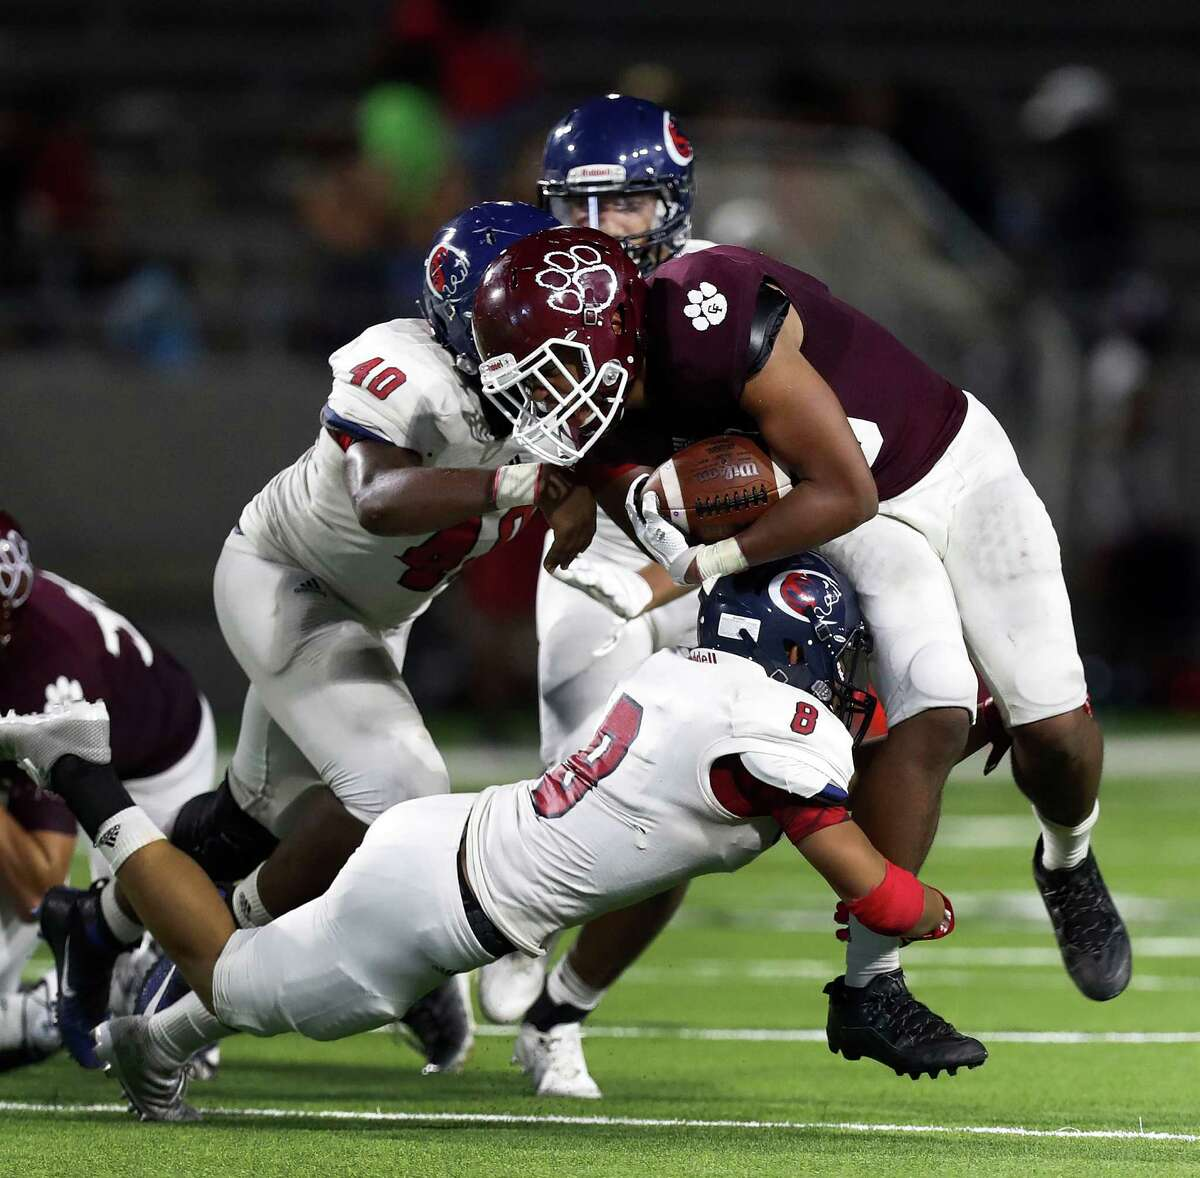 Cy-Fair's Trenton Kennedy (43) is tackled by Cypress Spring' Jonathan Huynh (8) during the second half of the Cy Springs vs. Cy-Fair high school football game at Pridgeon Stadium, Thursday, Sept. 15, 2016 in Houston.